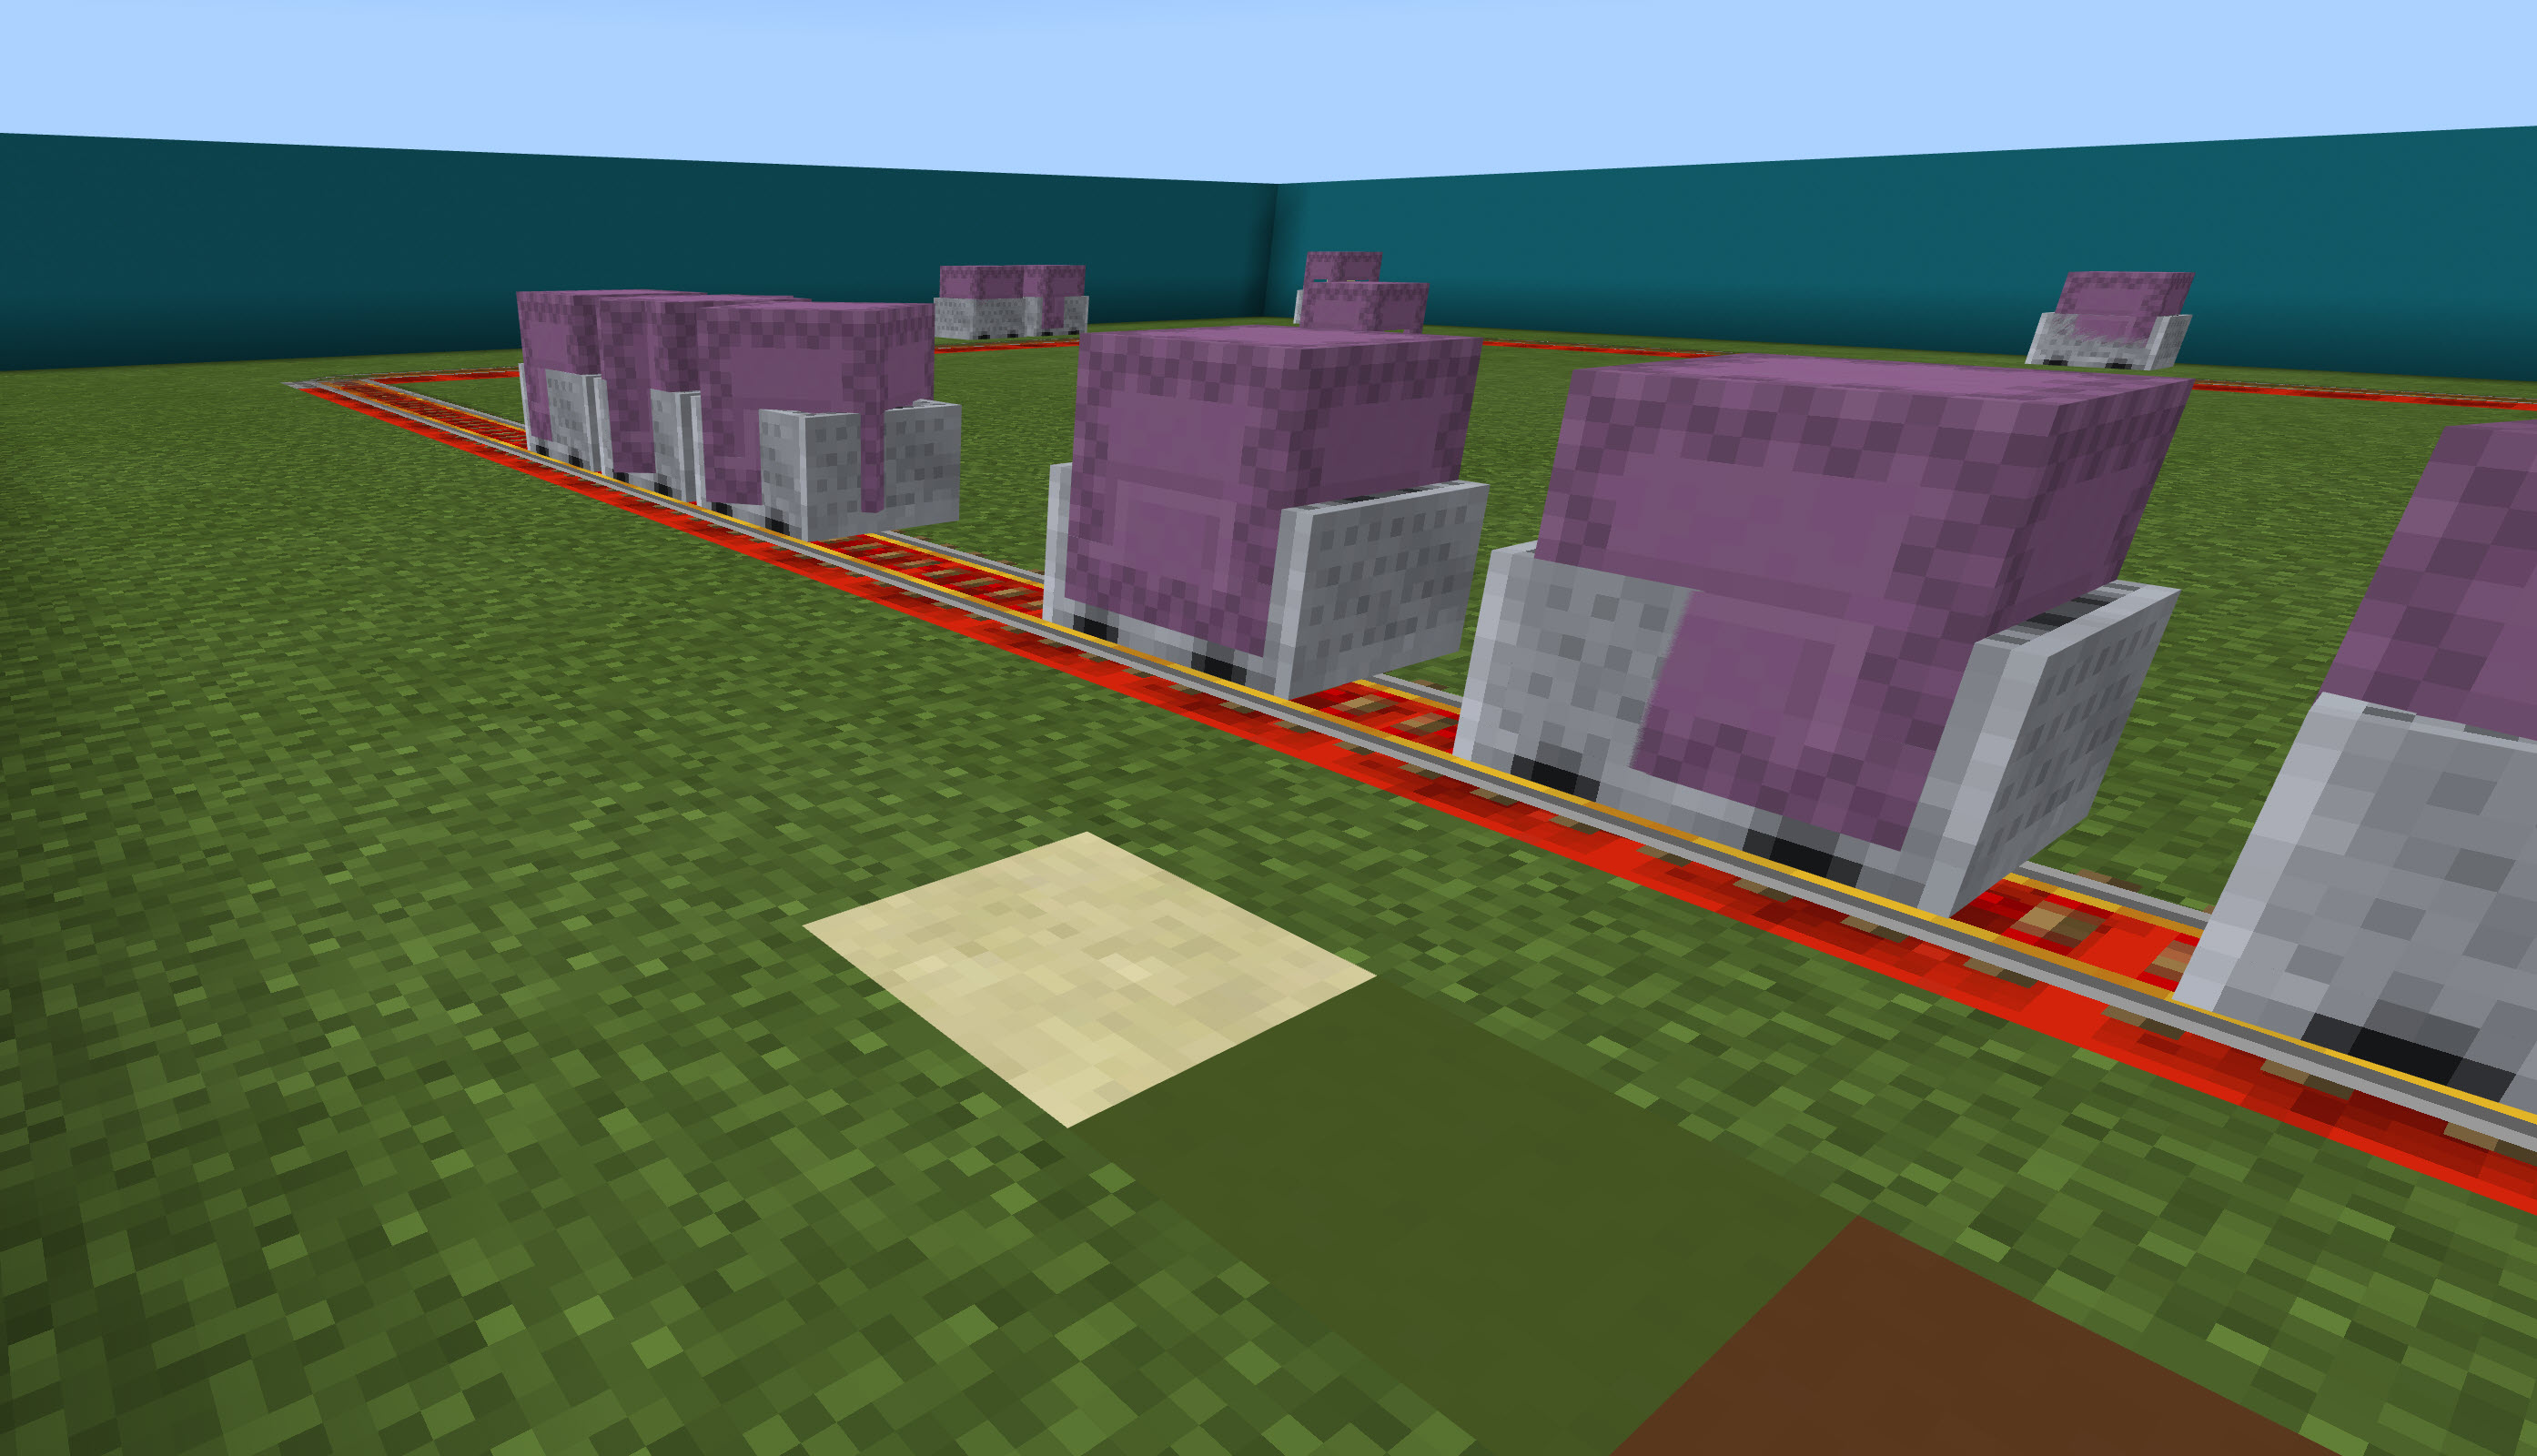 Riding the Rail with MakeCode for Minecraft | We Code MakeCode